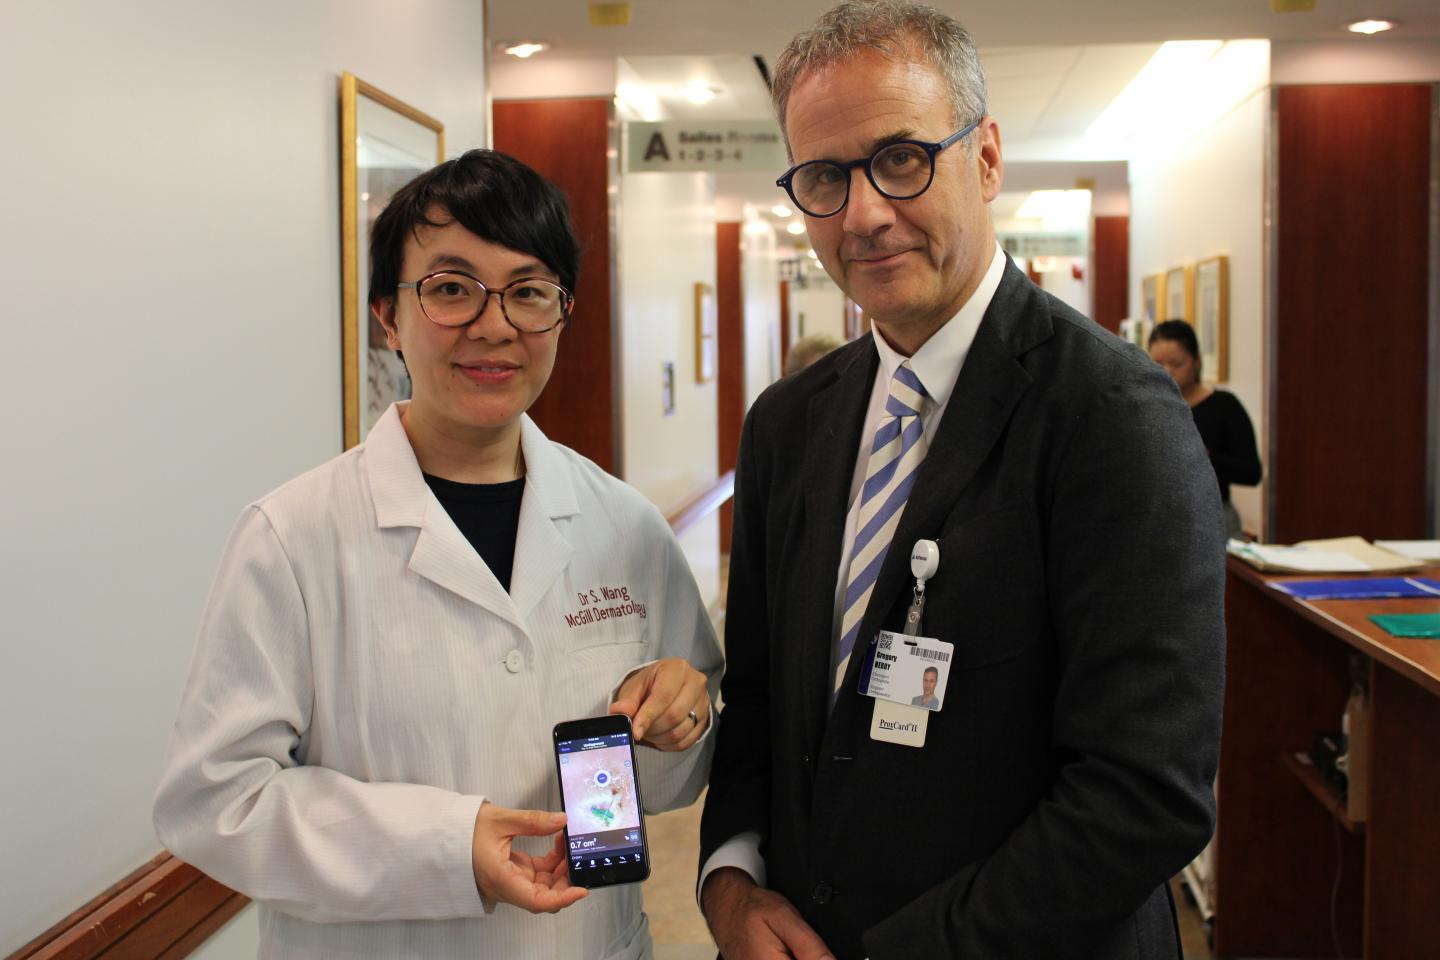 Drs. Sheila Wang and Greg Berry, with the Swift Skin and Wound app